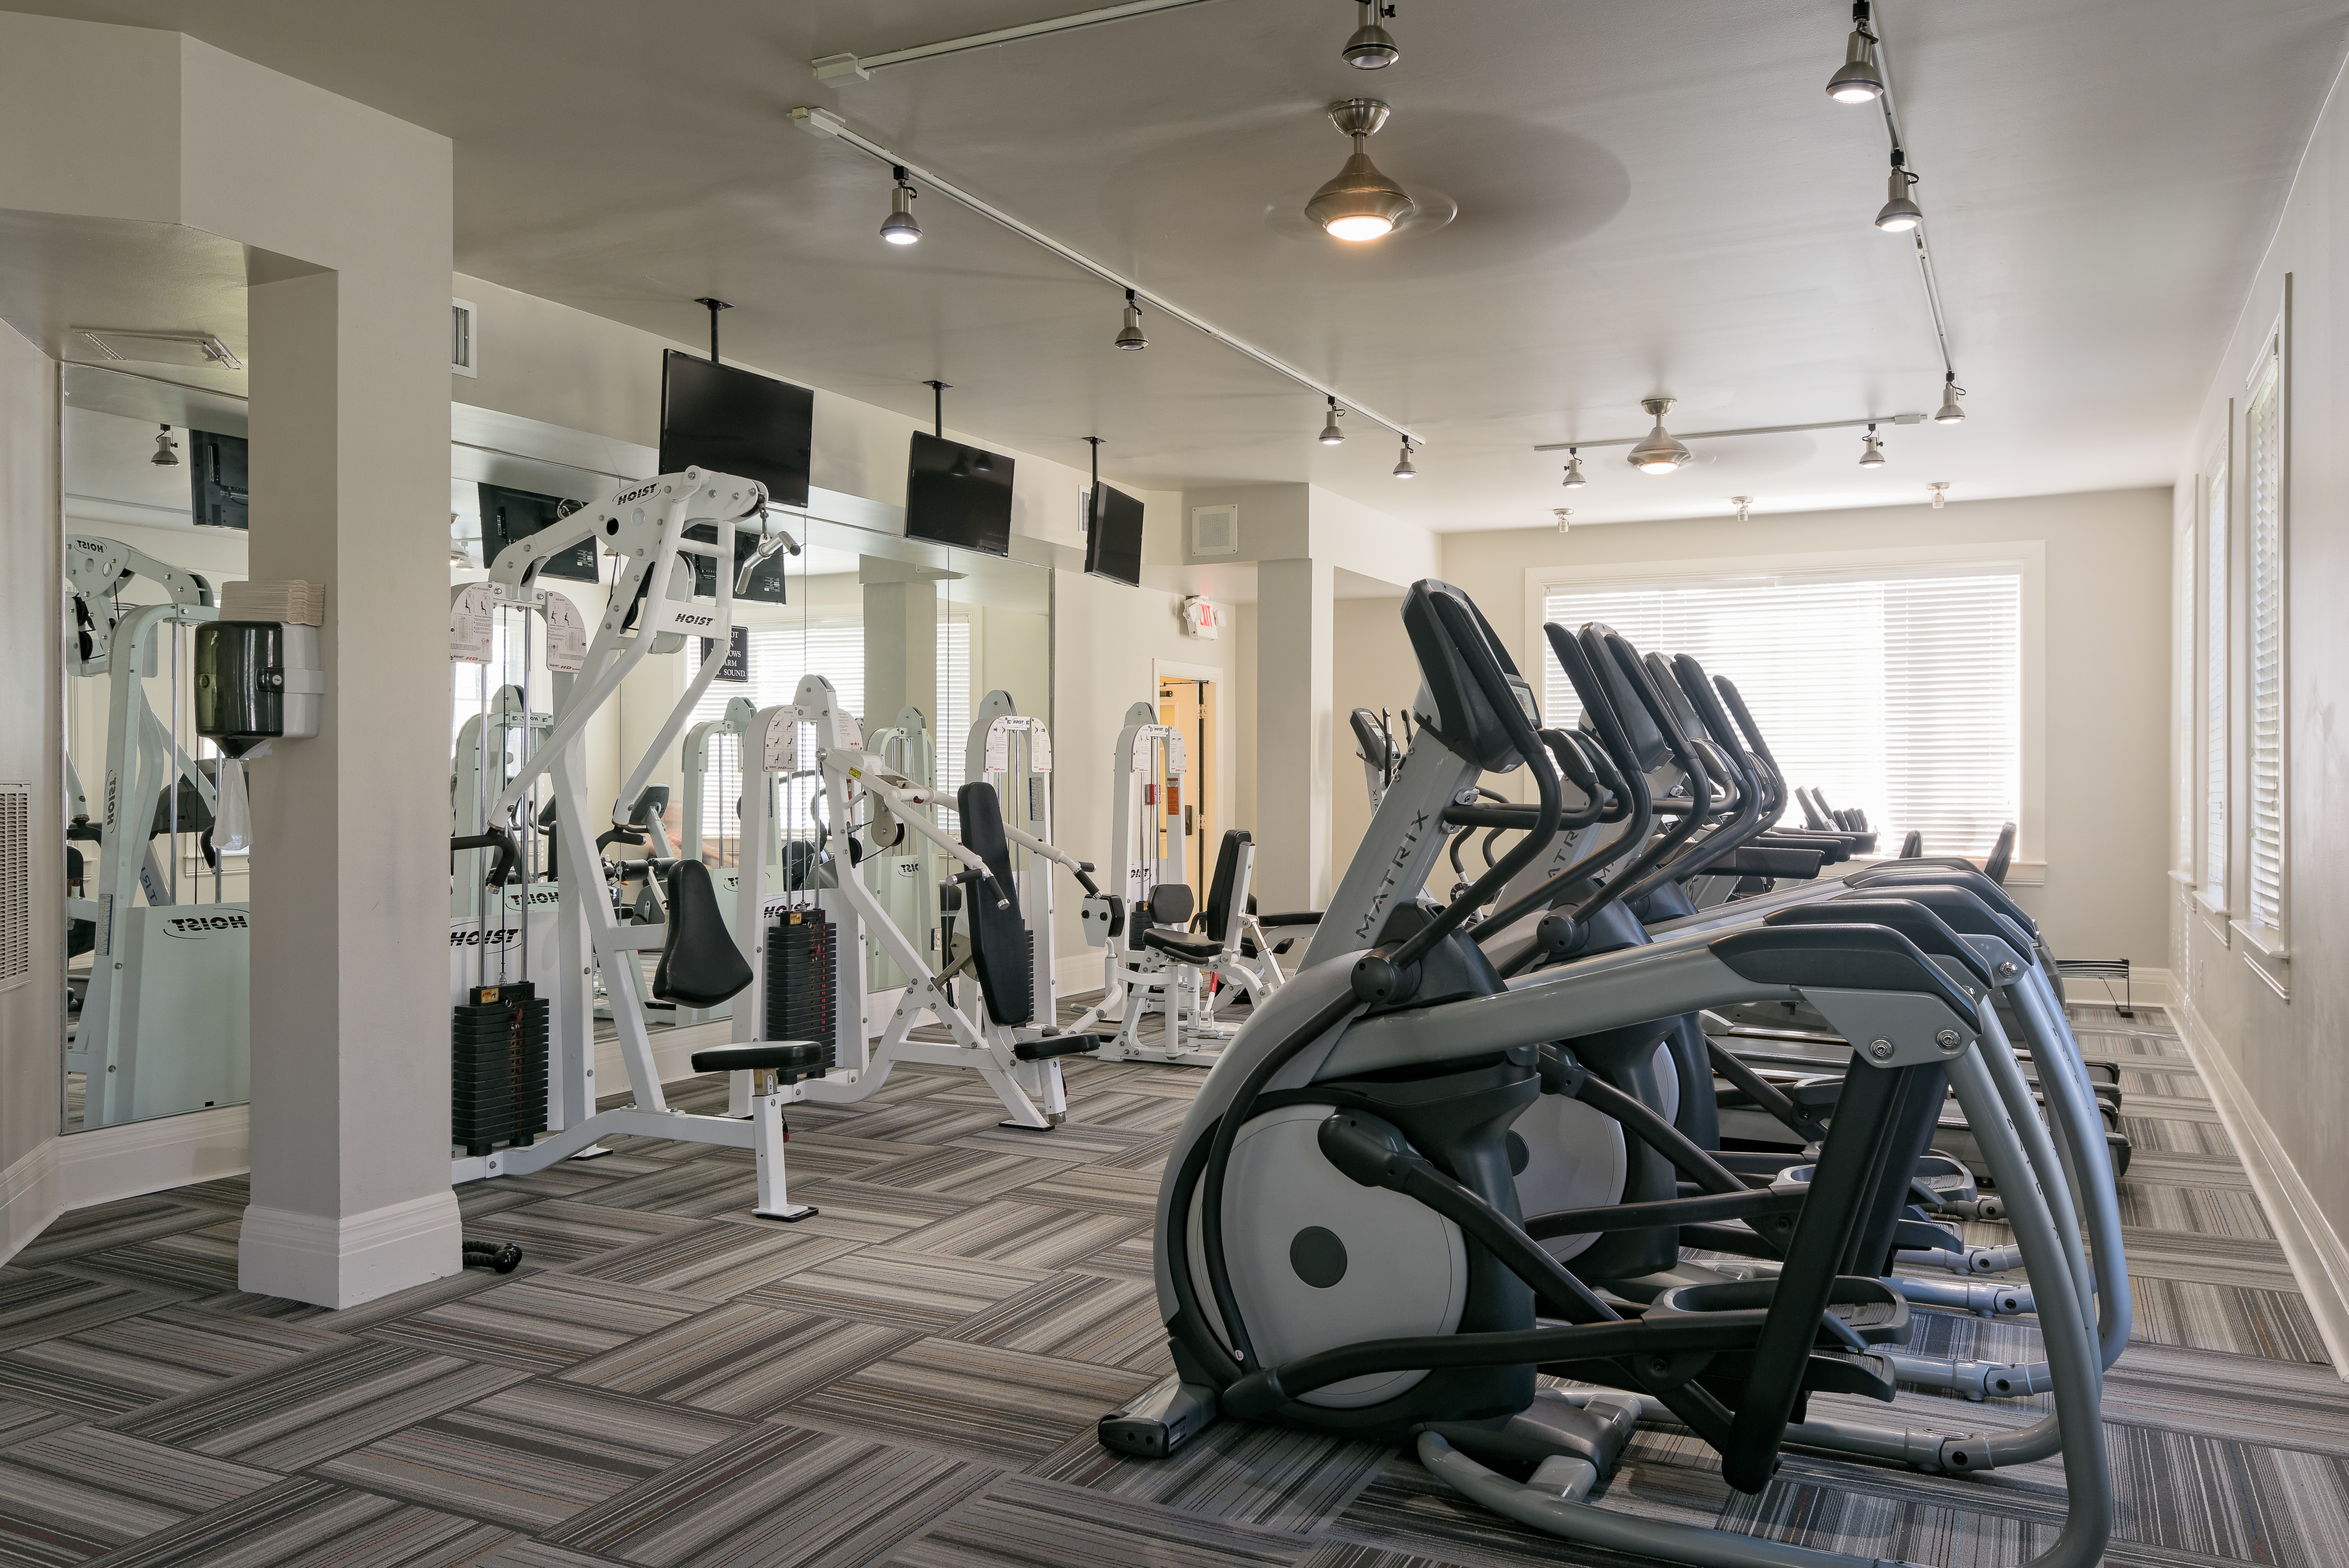 Fitness center with weight machines, wall TVs, pendant lights, and cardio equipment